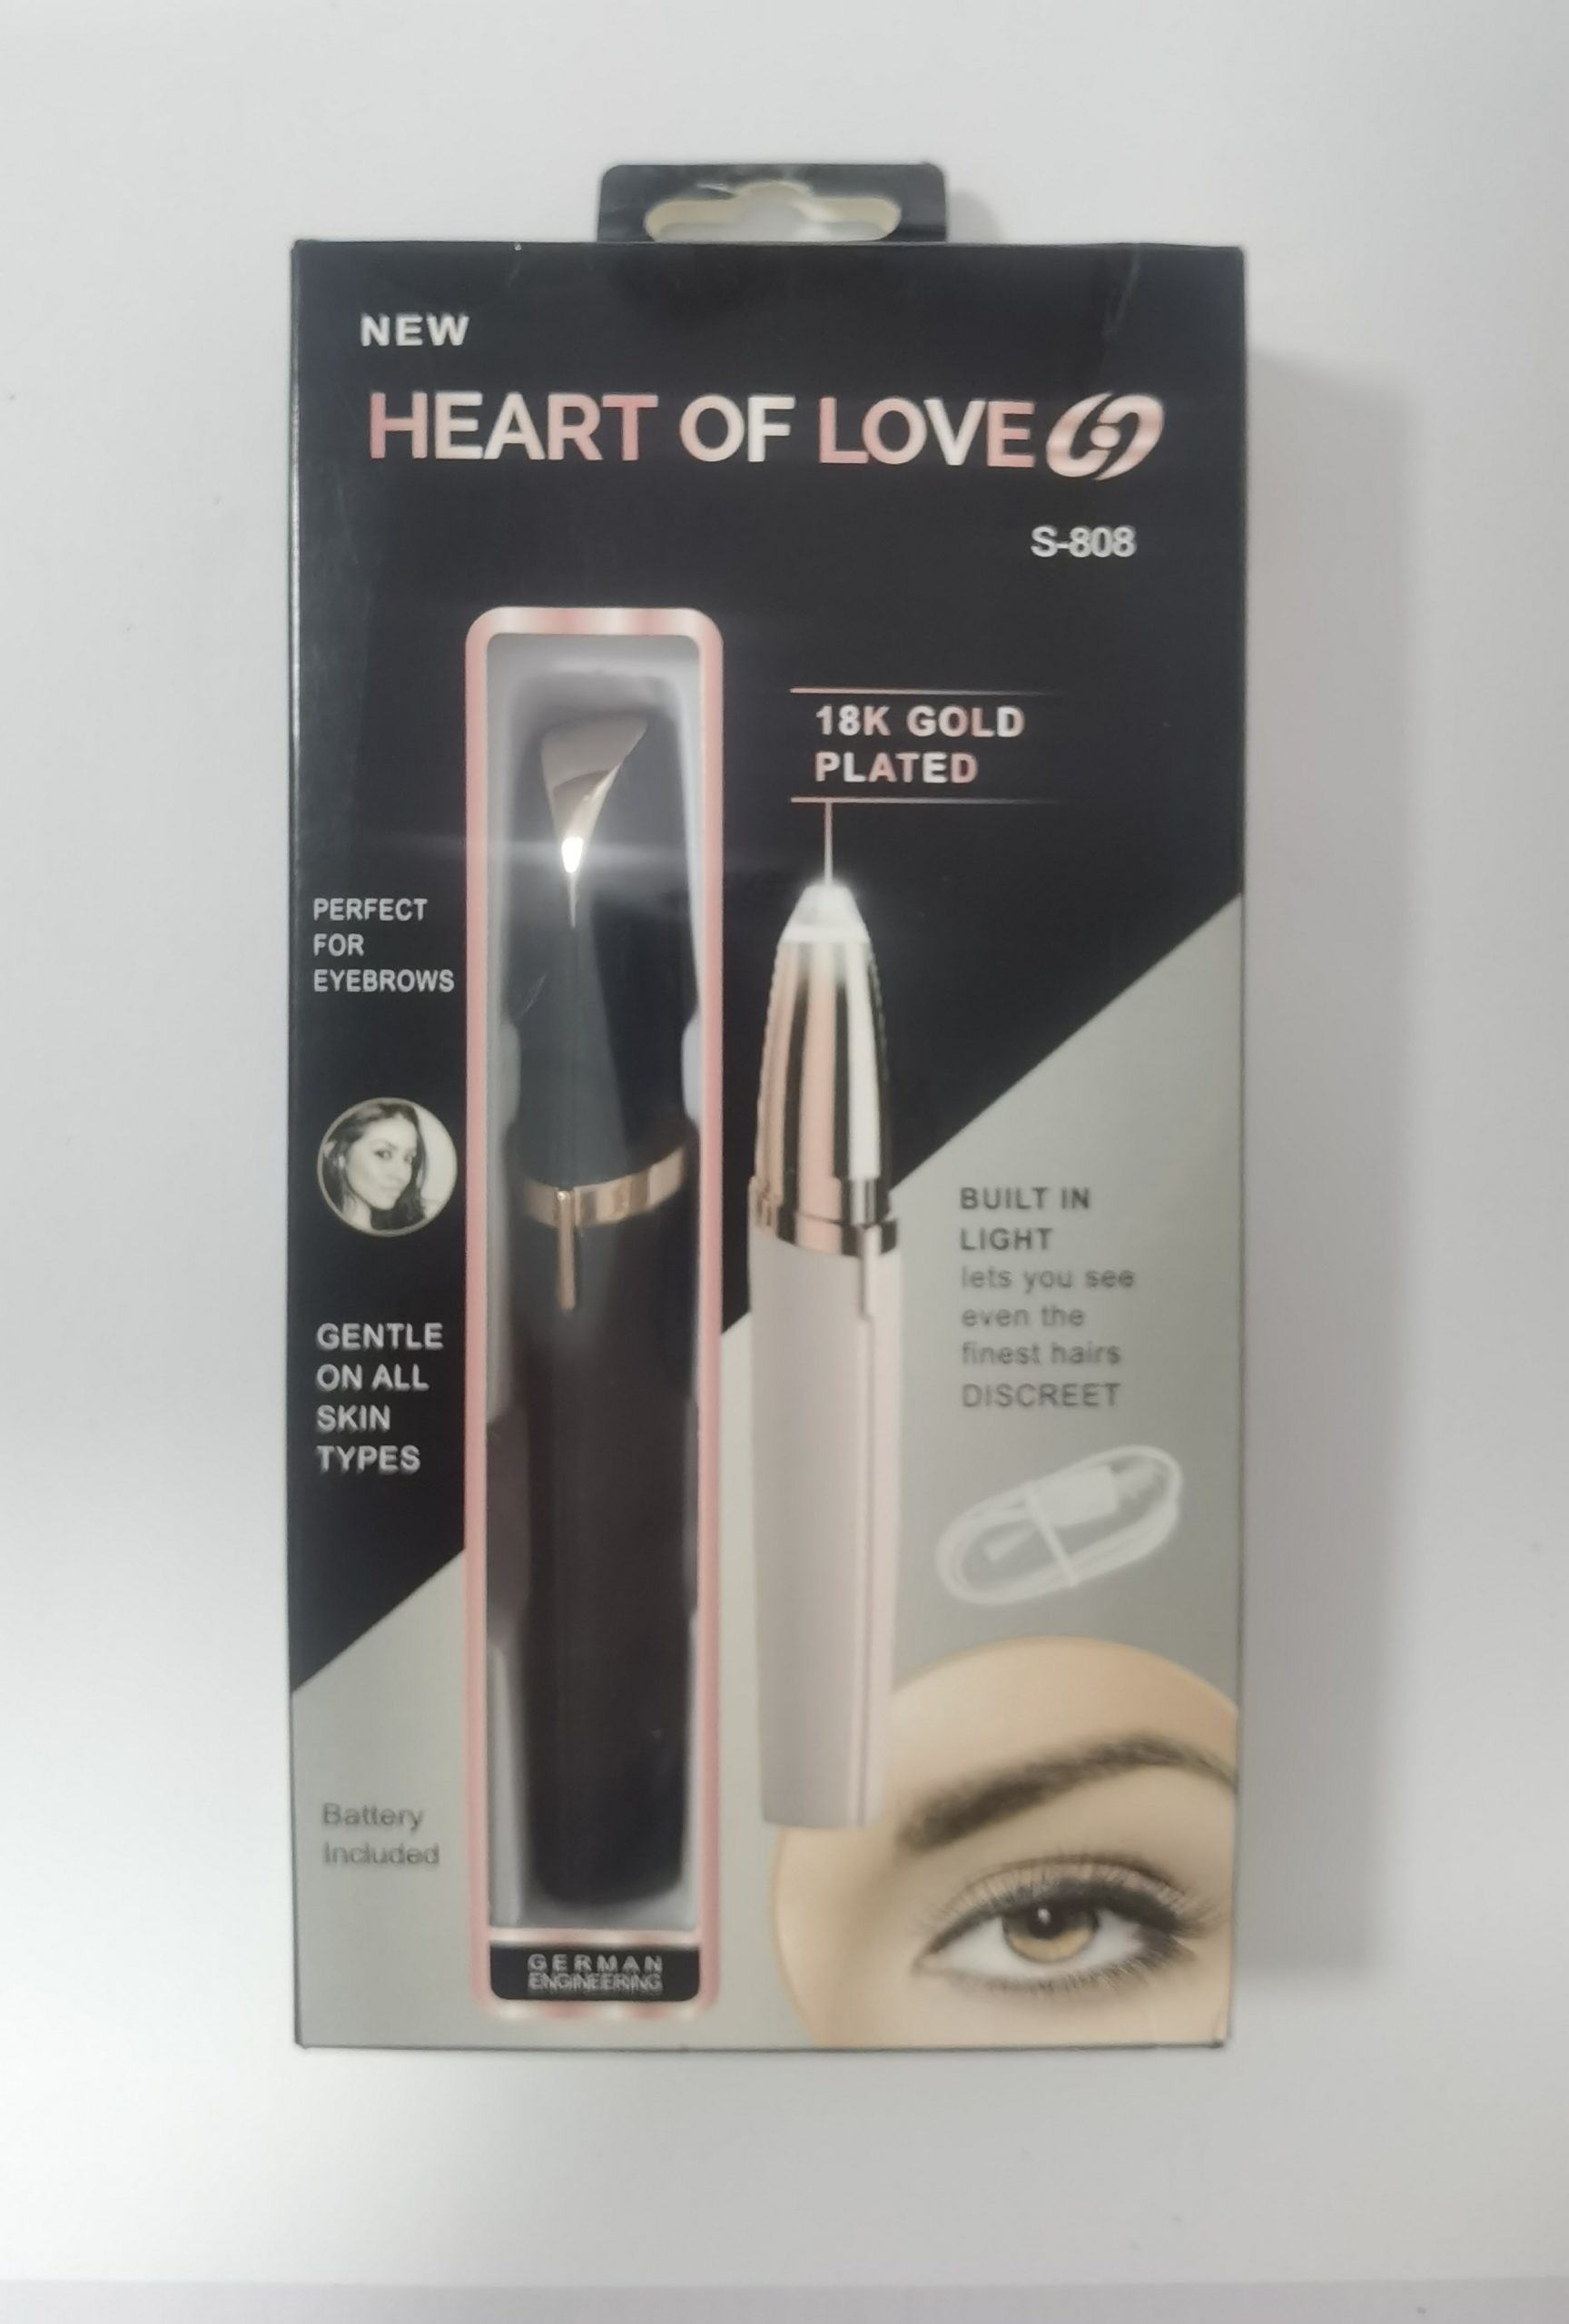 Mini Electric Eyebrow Trimmer Lipstick Brows Pen Hair Remover Painless Razor Epilator with LED Light allinonehere.com